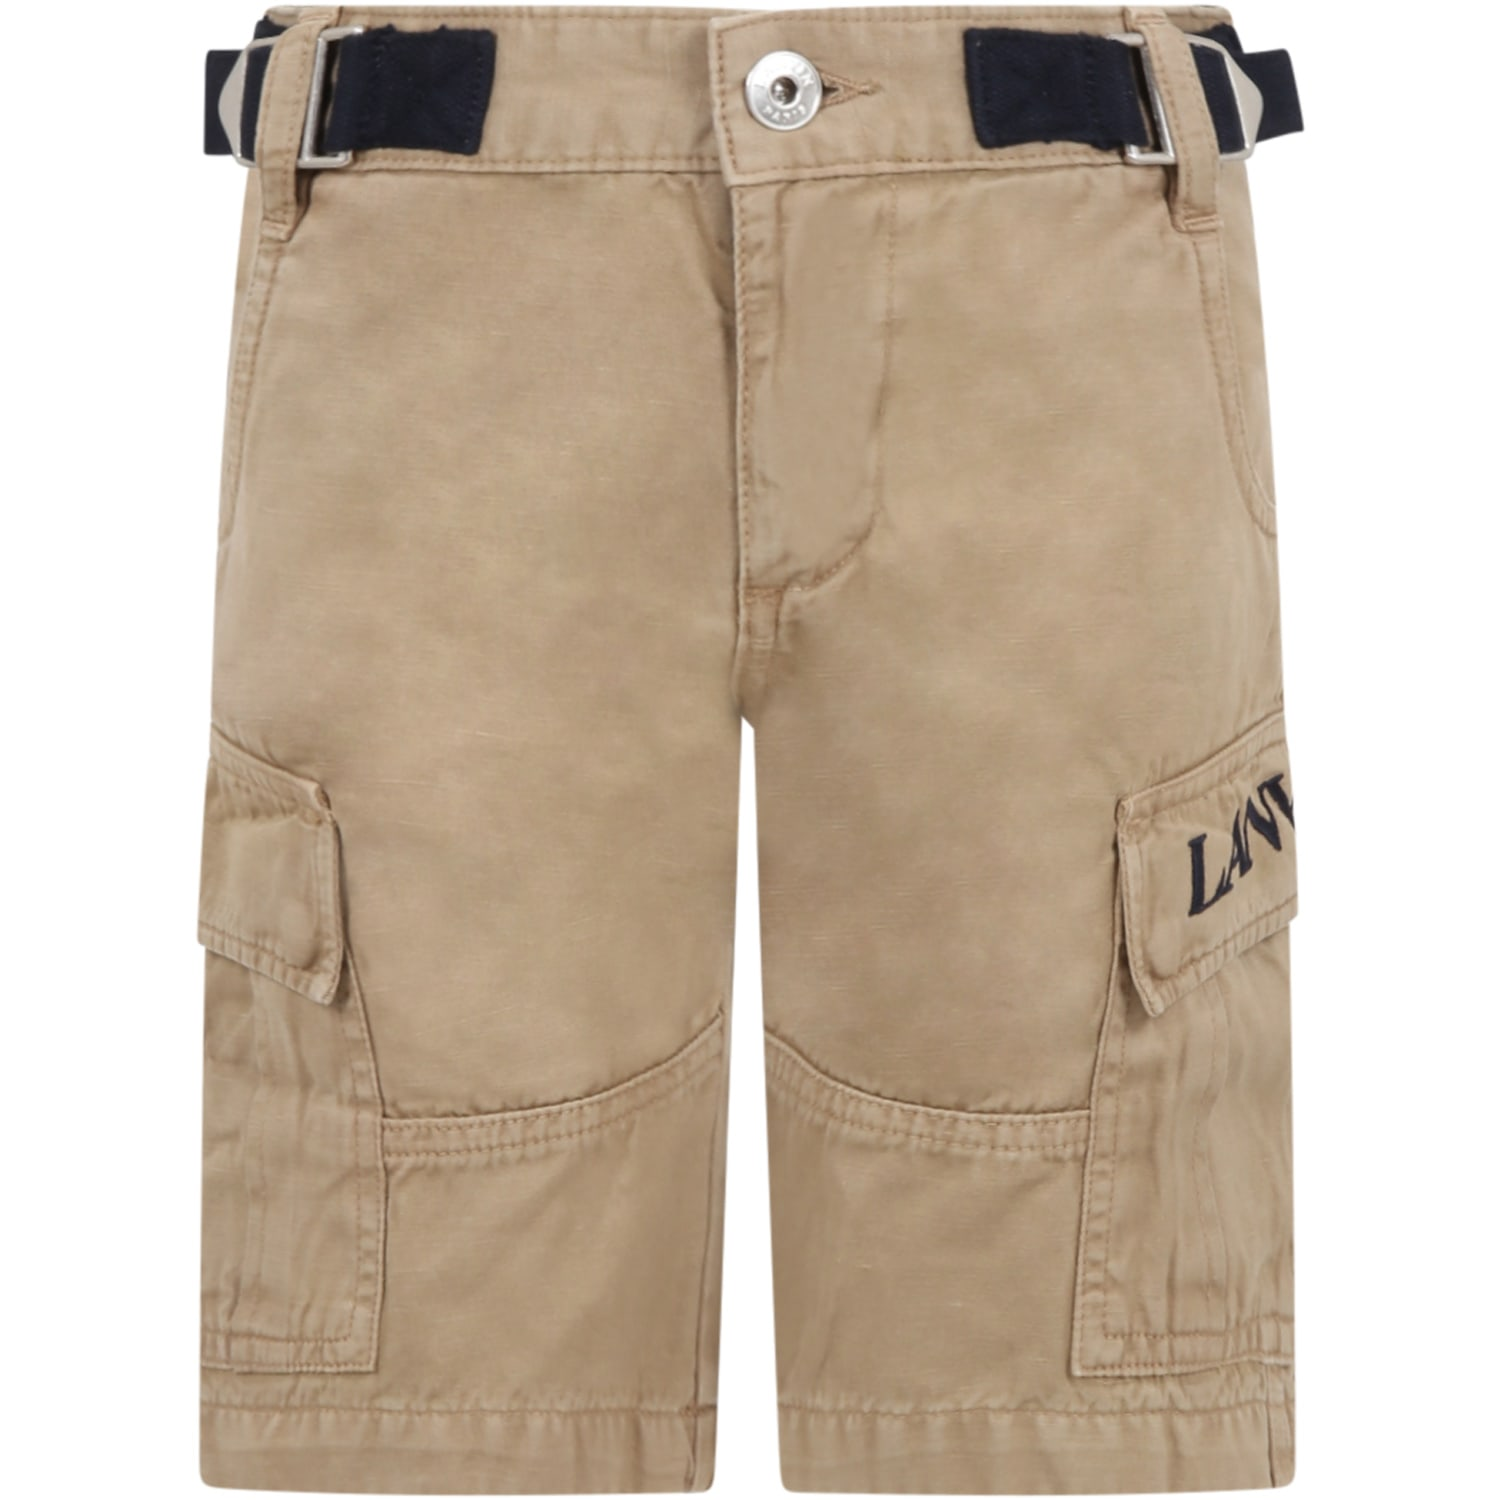 Lanvin Shorts BEIGE SHORT FOR BOY WITH LOGO